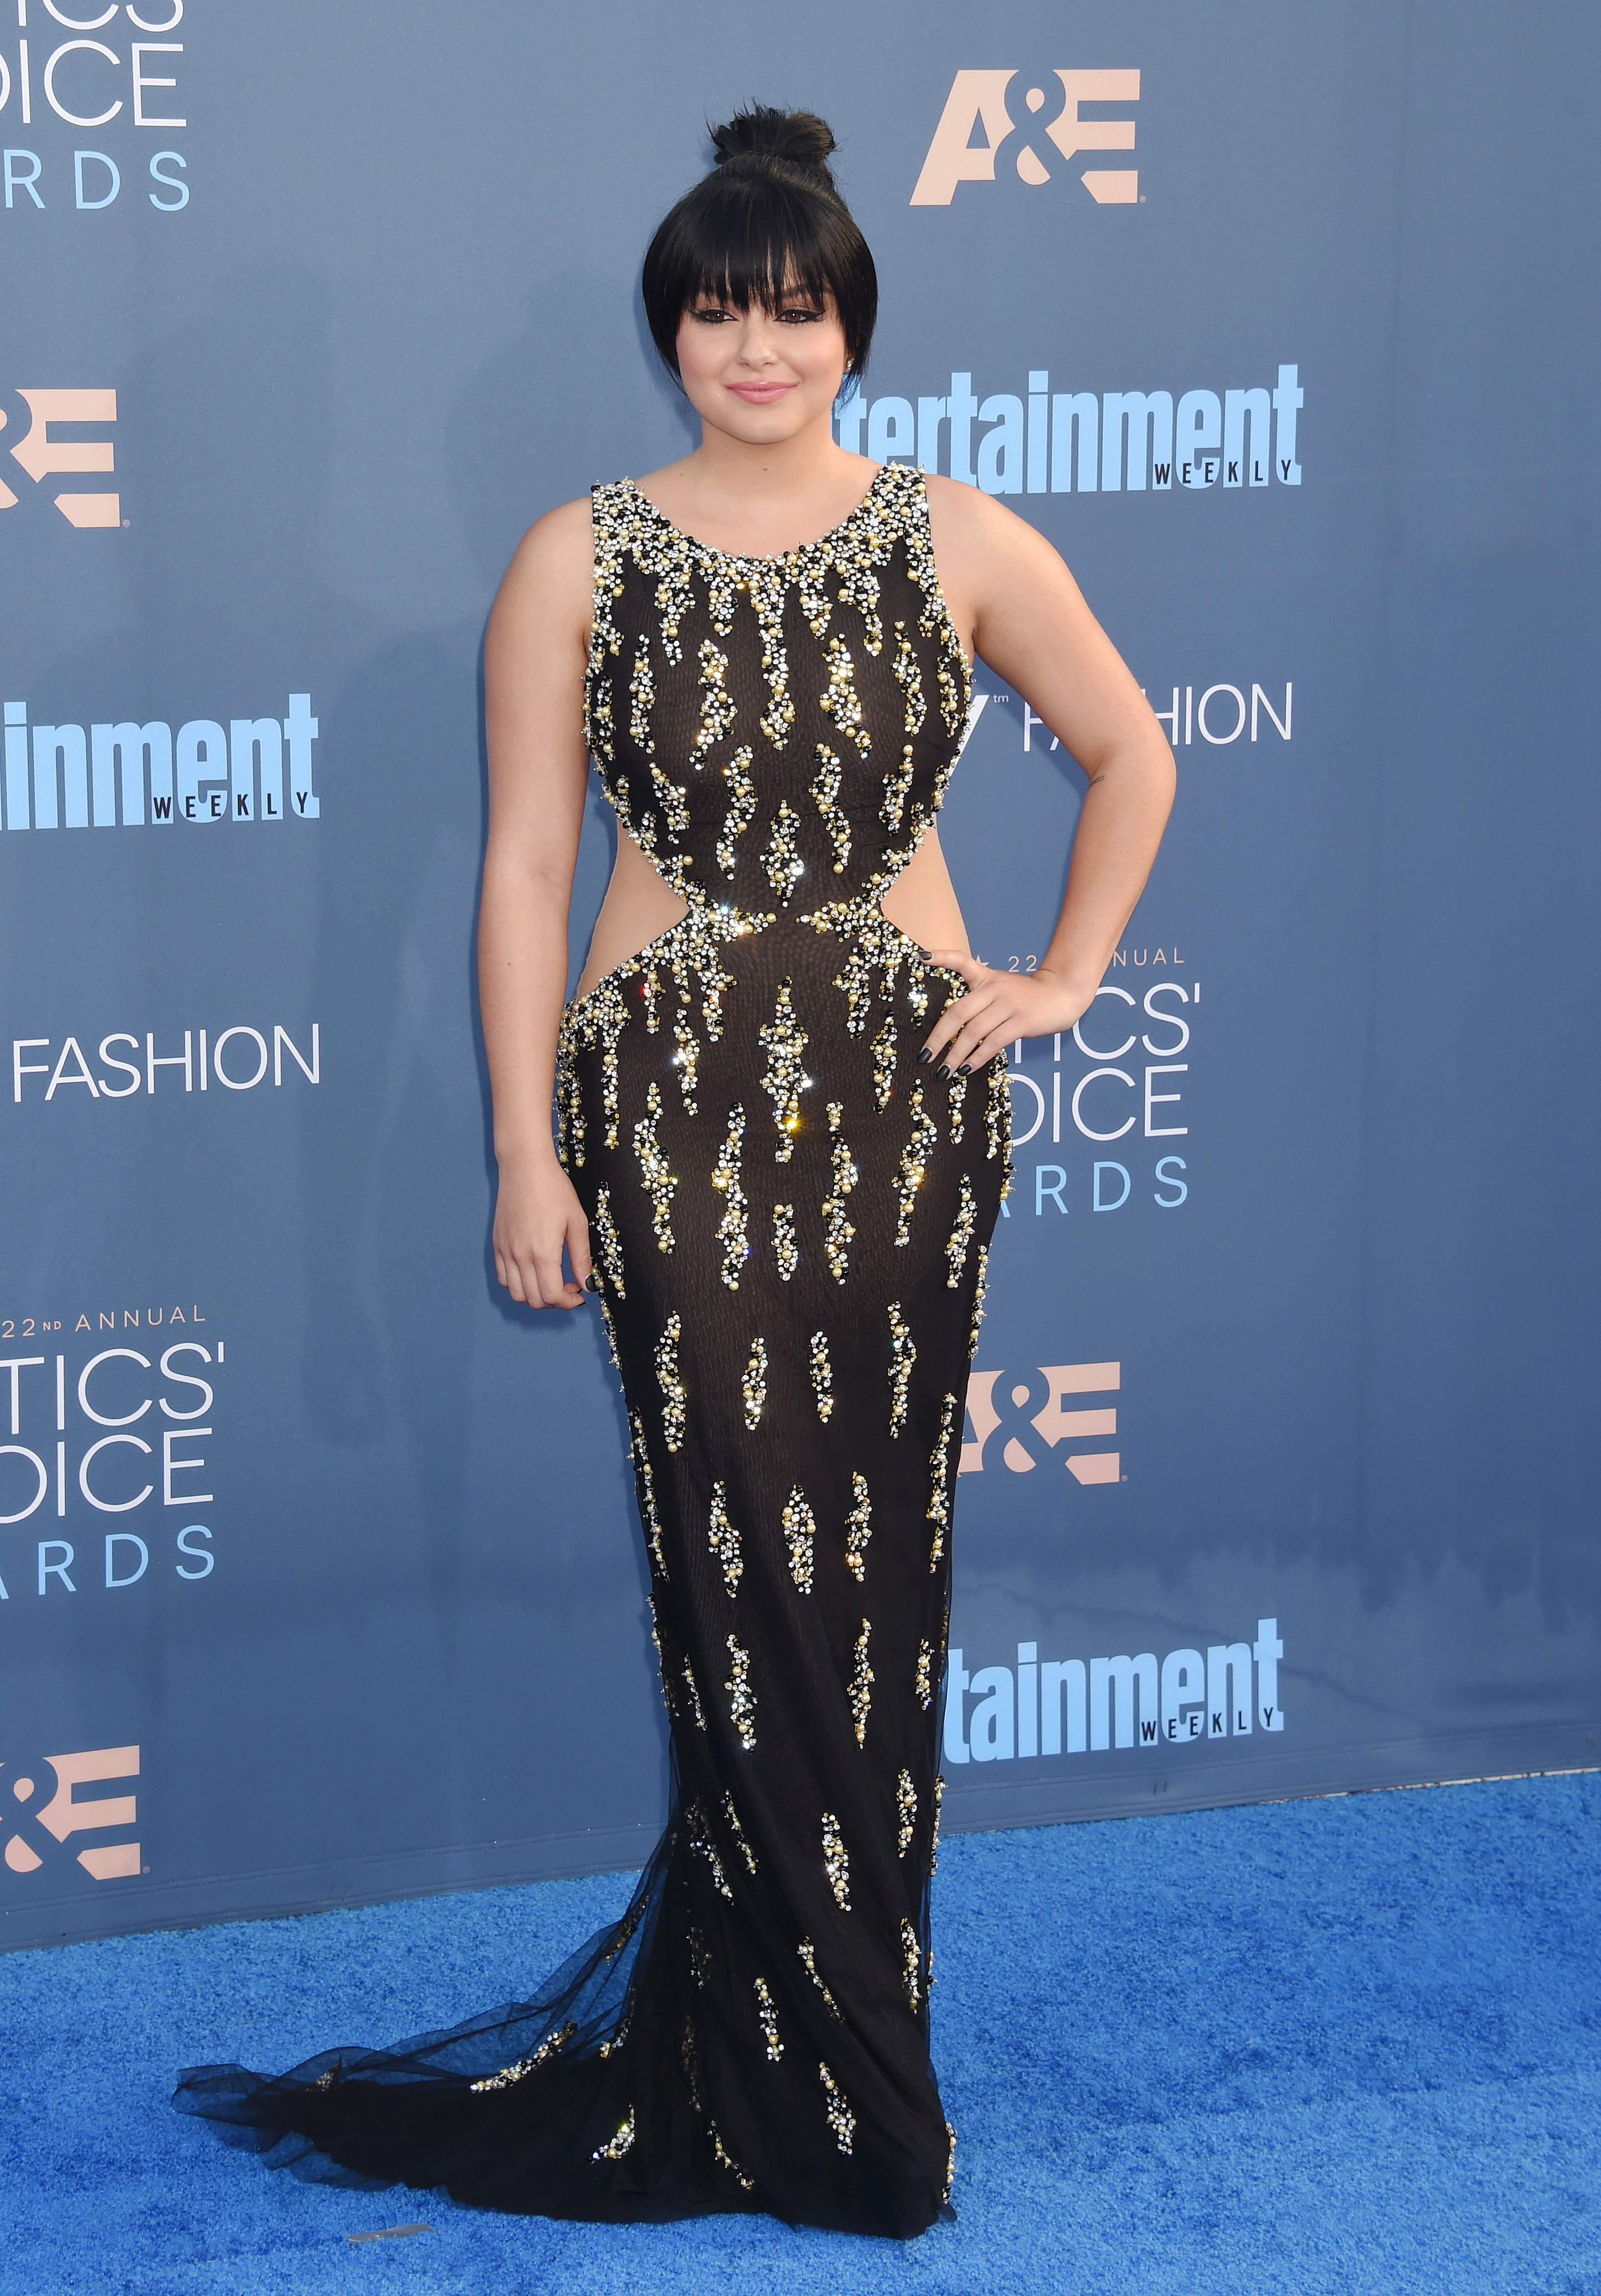 Ariel Winter 39 S Slitted Dress With Cascading Jewels Looks Fit For A Divine Disney Villain